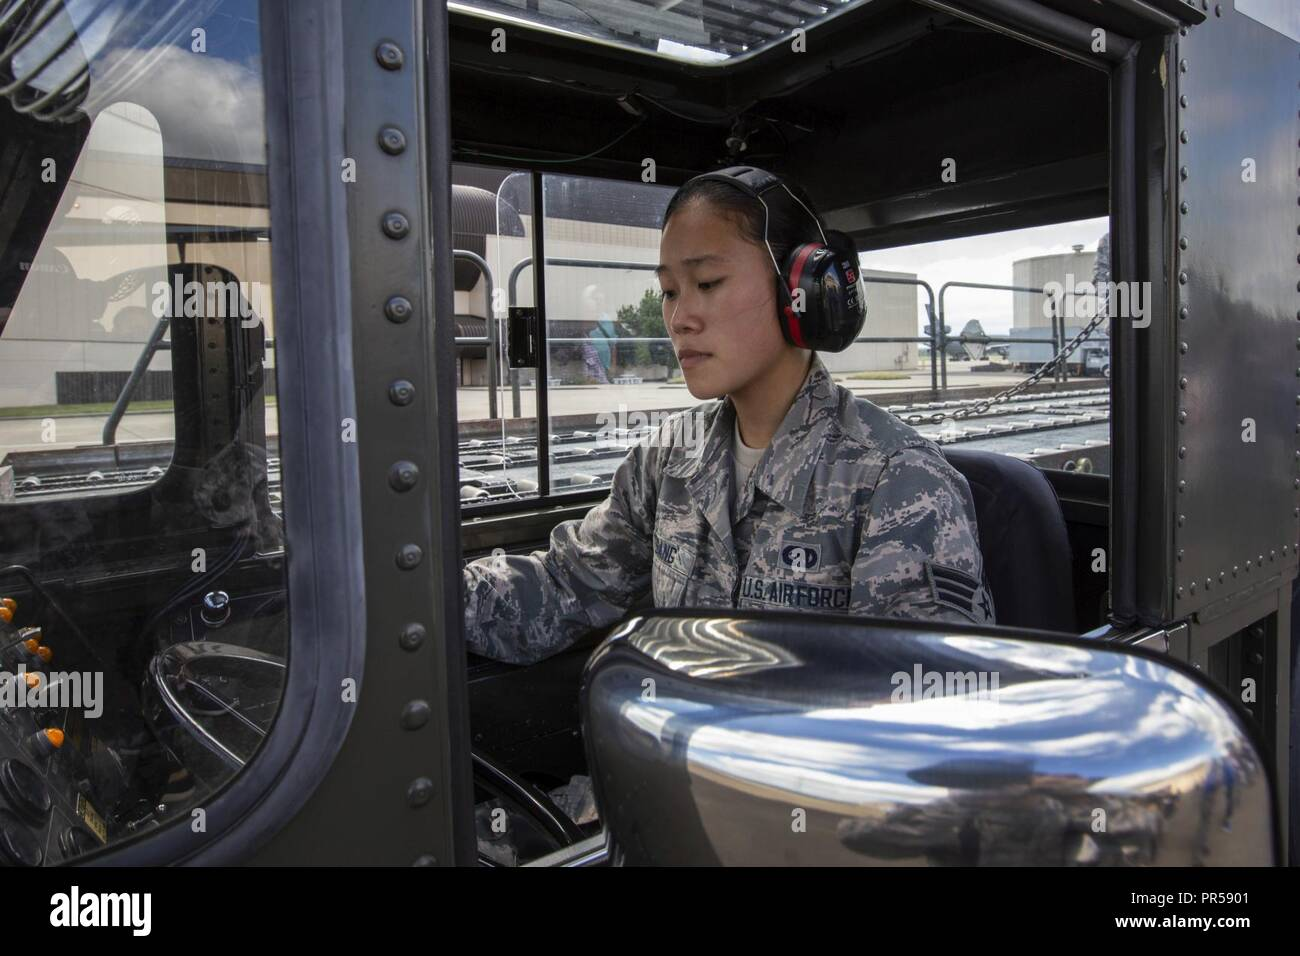 U.S. Air Force Senior Airmen Vince Tsang with the 88th Aerial Port Squadron, 514th Air Mobility Wing, operates a Tunner 60K aircraft loader/transporter at Joint Base McGuire-Dix-Lakehurst, N.J., Sept. 15, 2018. The 514th is an Air Force Reserve Command Unit. - Stock Image